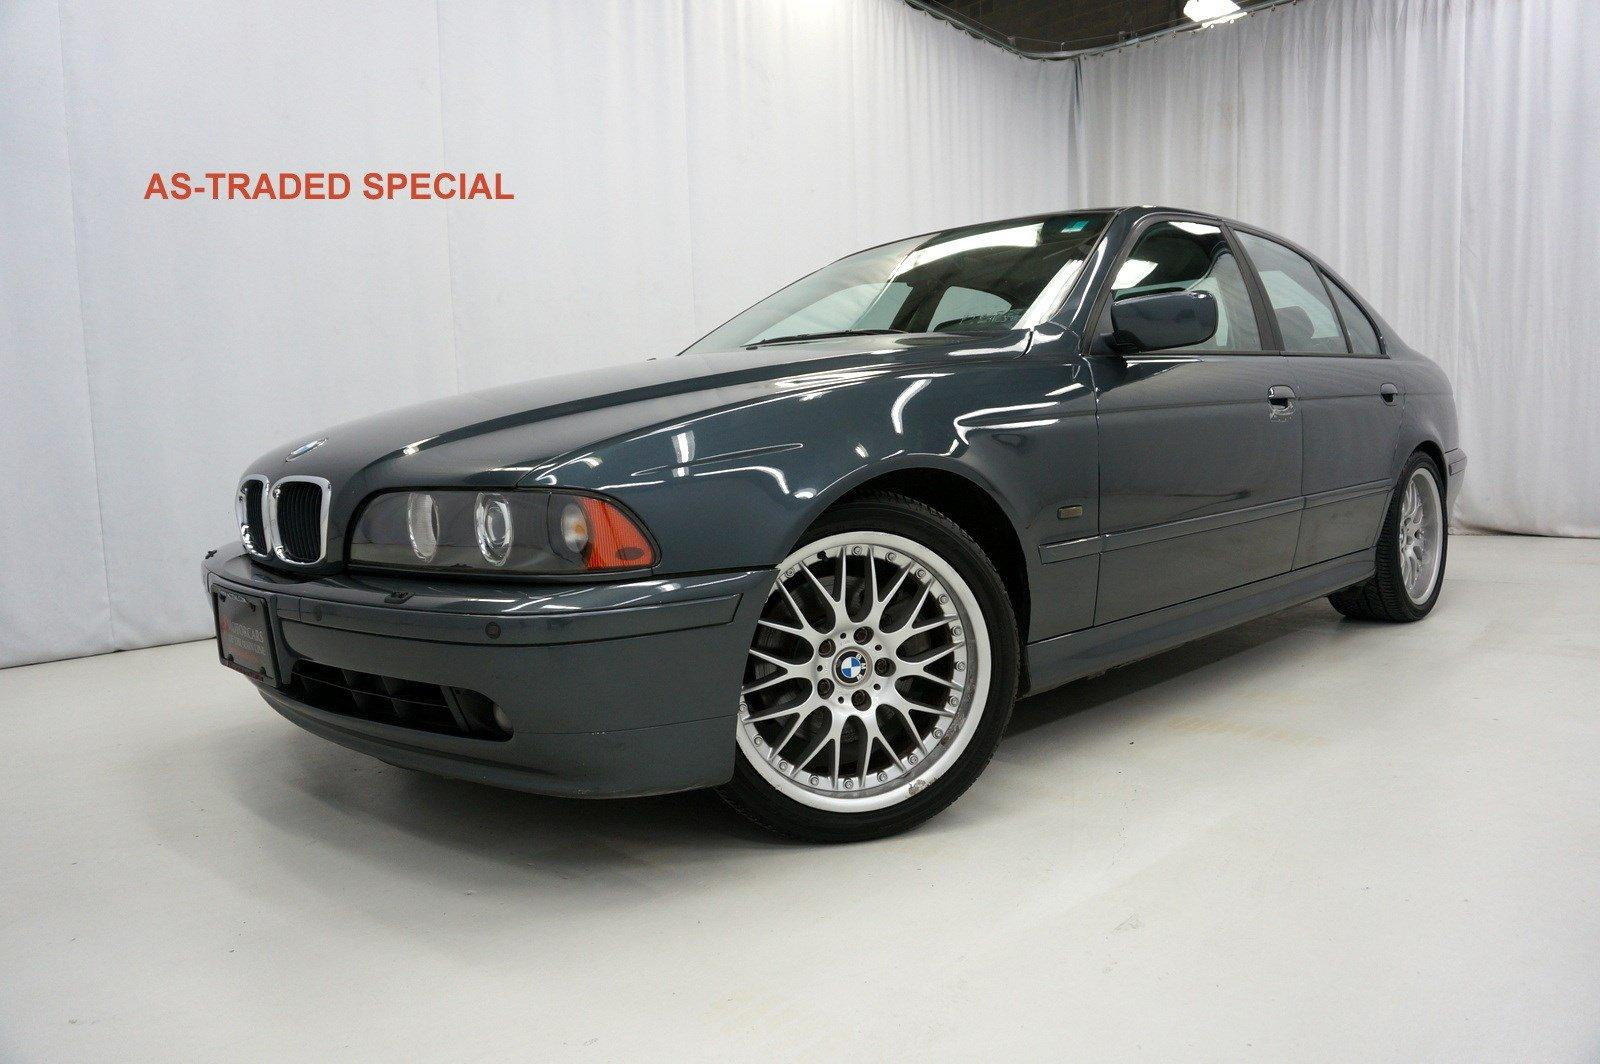 2001 bmw 5 series 530i stock ce90366 for sale near king of prussia pa pa bmw dealer 2001 bmw 5 series 530i stock ce90366